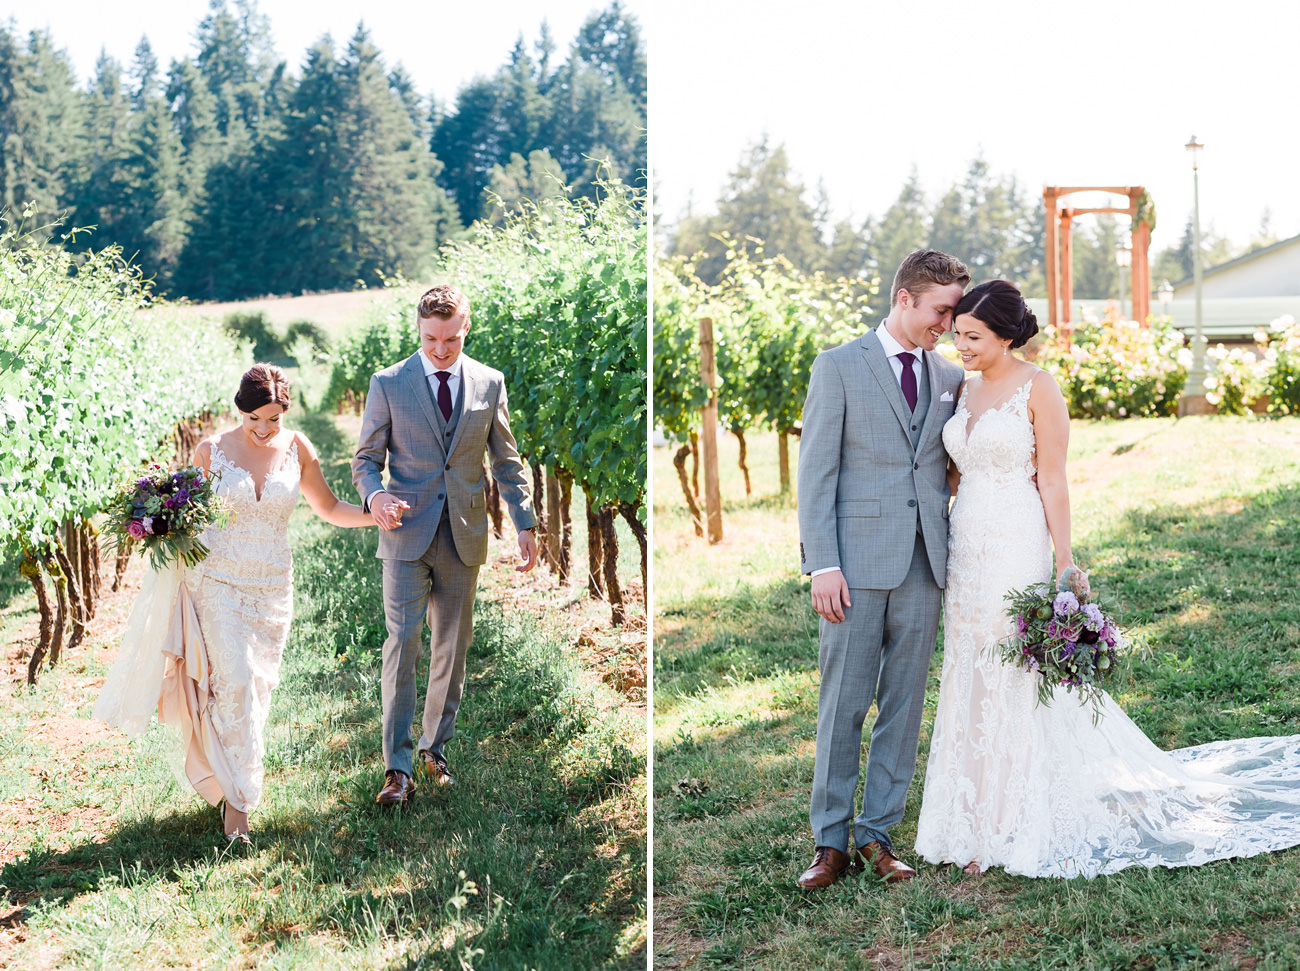 wedding-at-sweet-cheeks-winery-59 Wedding at Sweet Cheeks Winery | Eugene Oregon Photography | Emily & Bradley